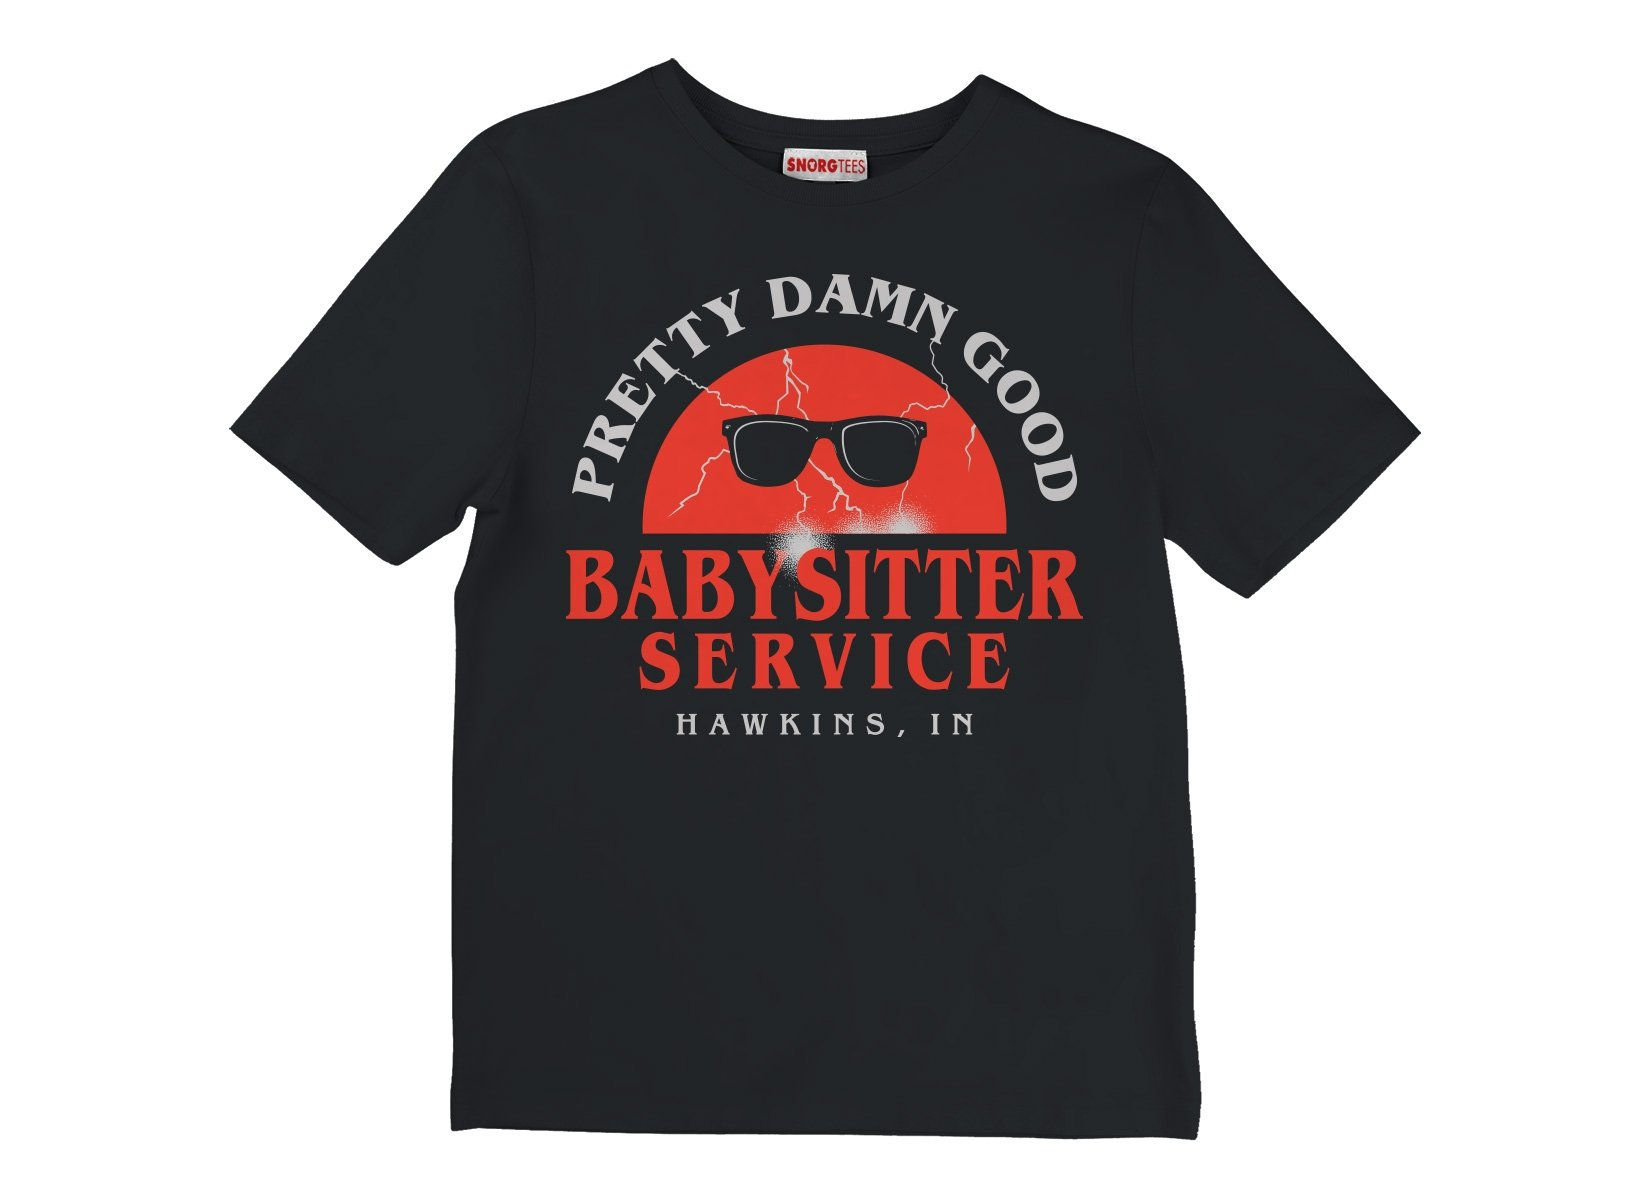 Pretty Damn Good Babysitter Service on Kids T-Shirt